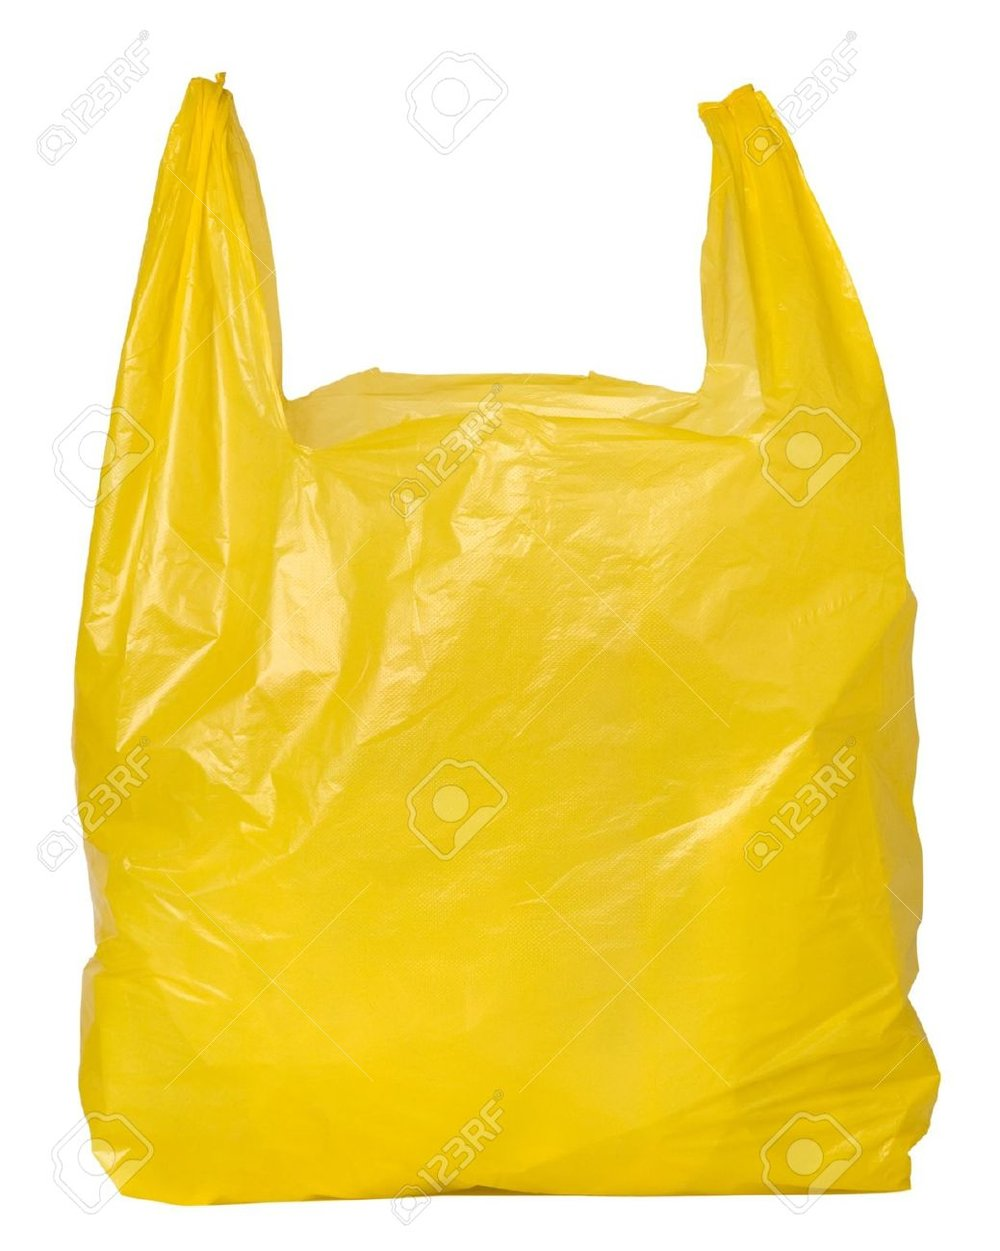 Plastic Bag.jpg